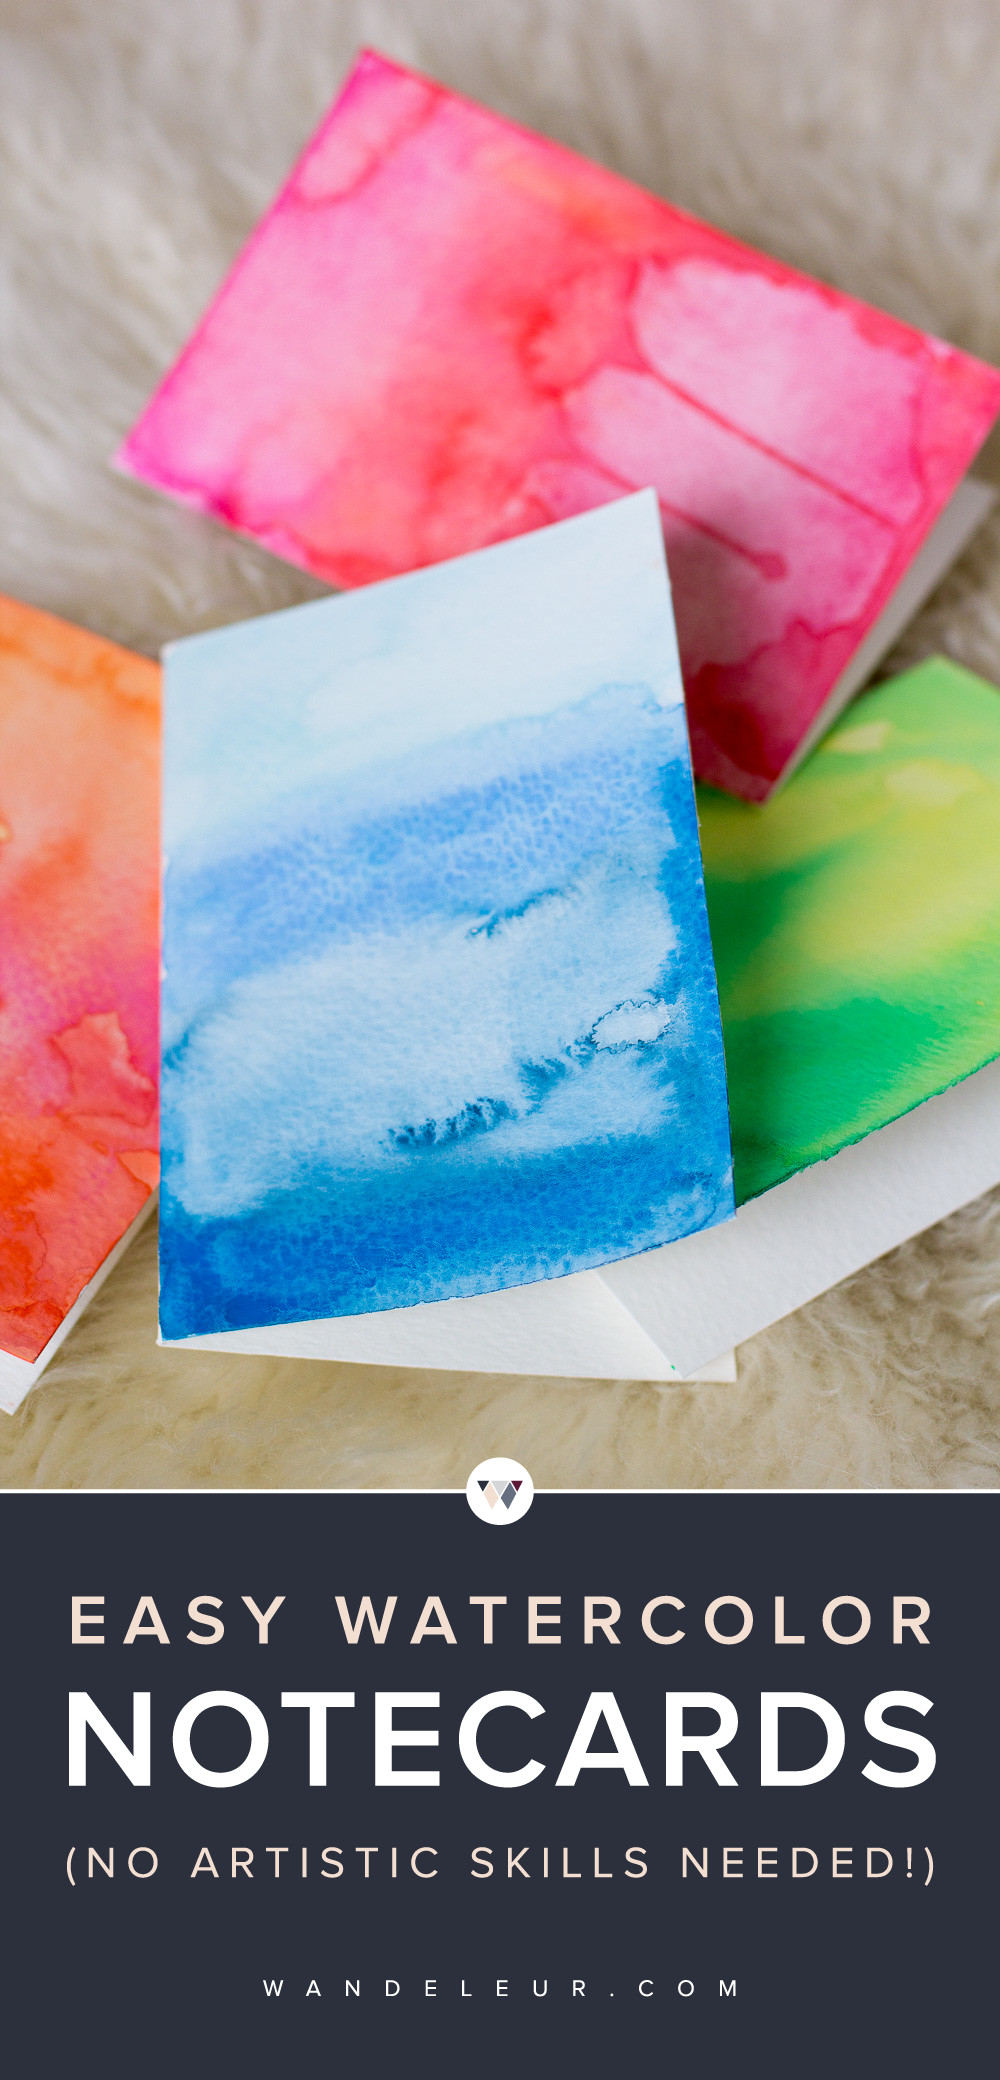 DIY Watercolor Christmas Cards  DIY Watercolor Greeting Cards — Wandeleur